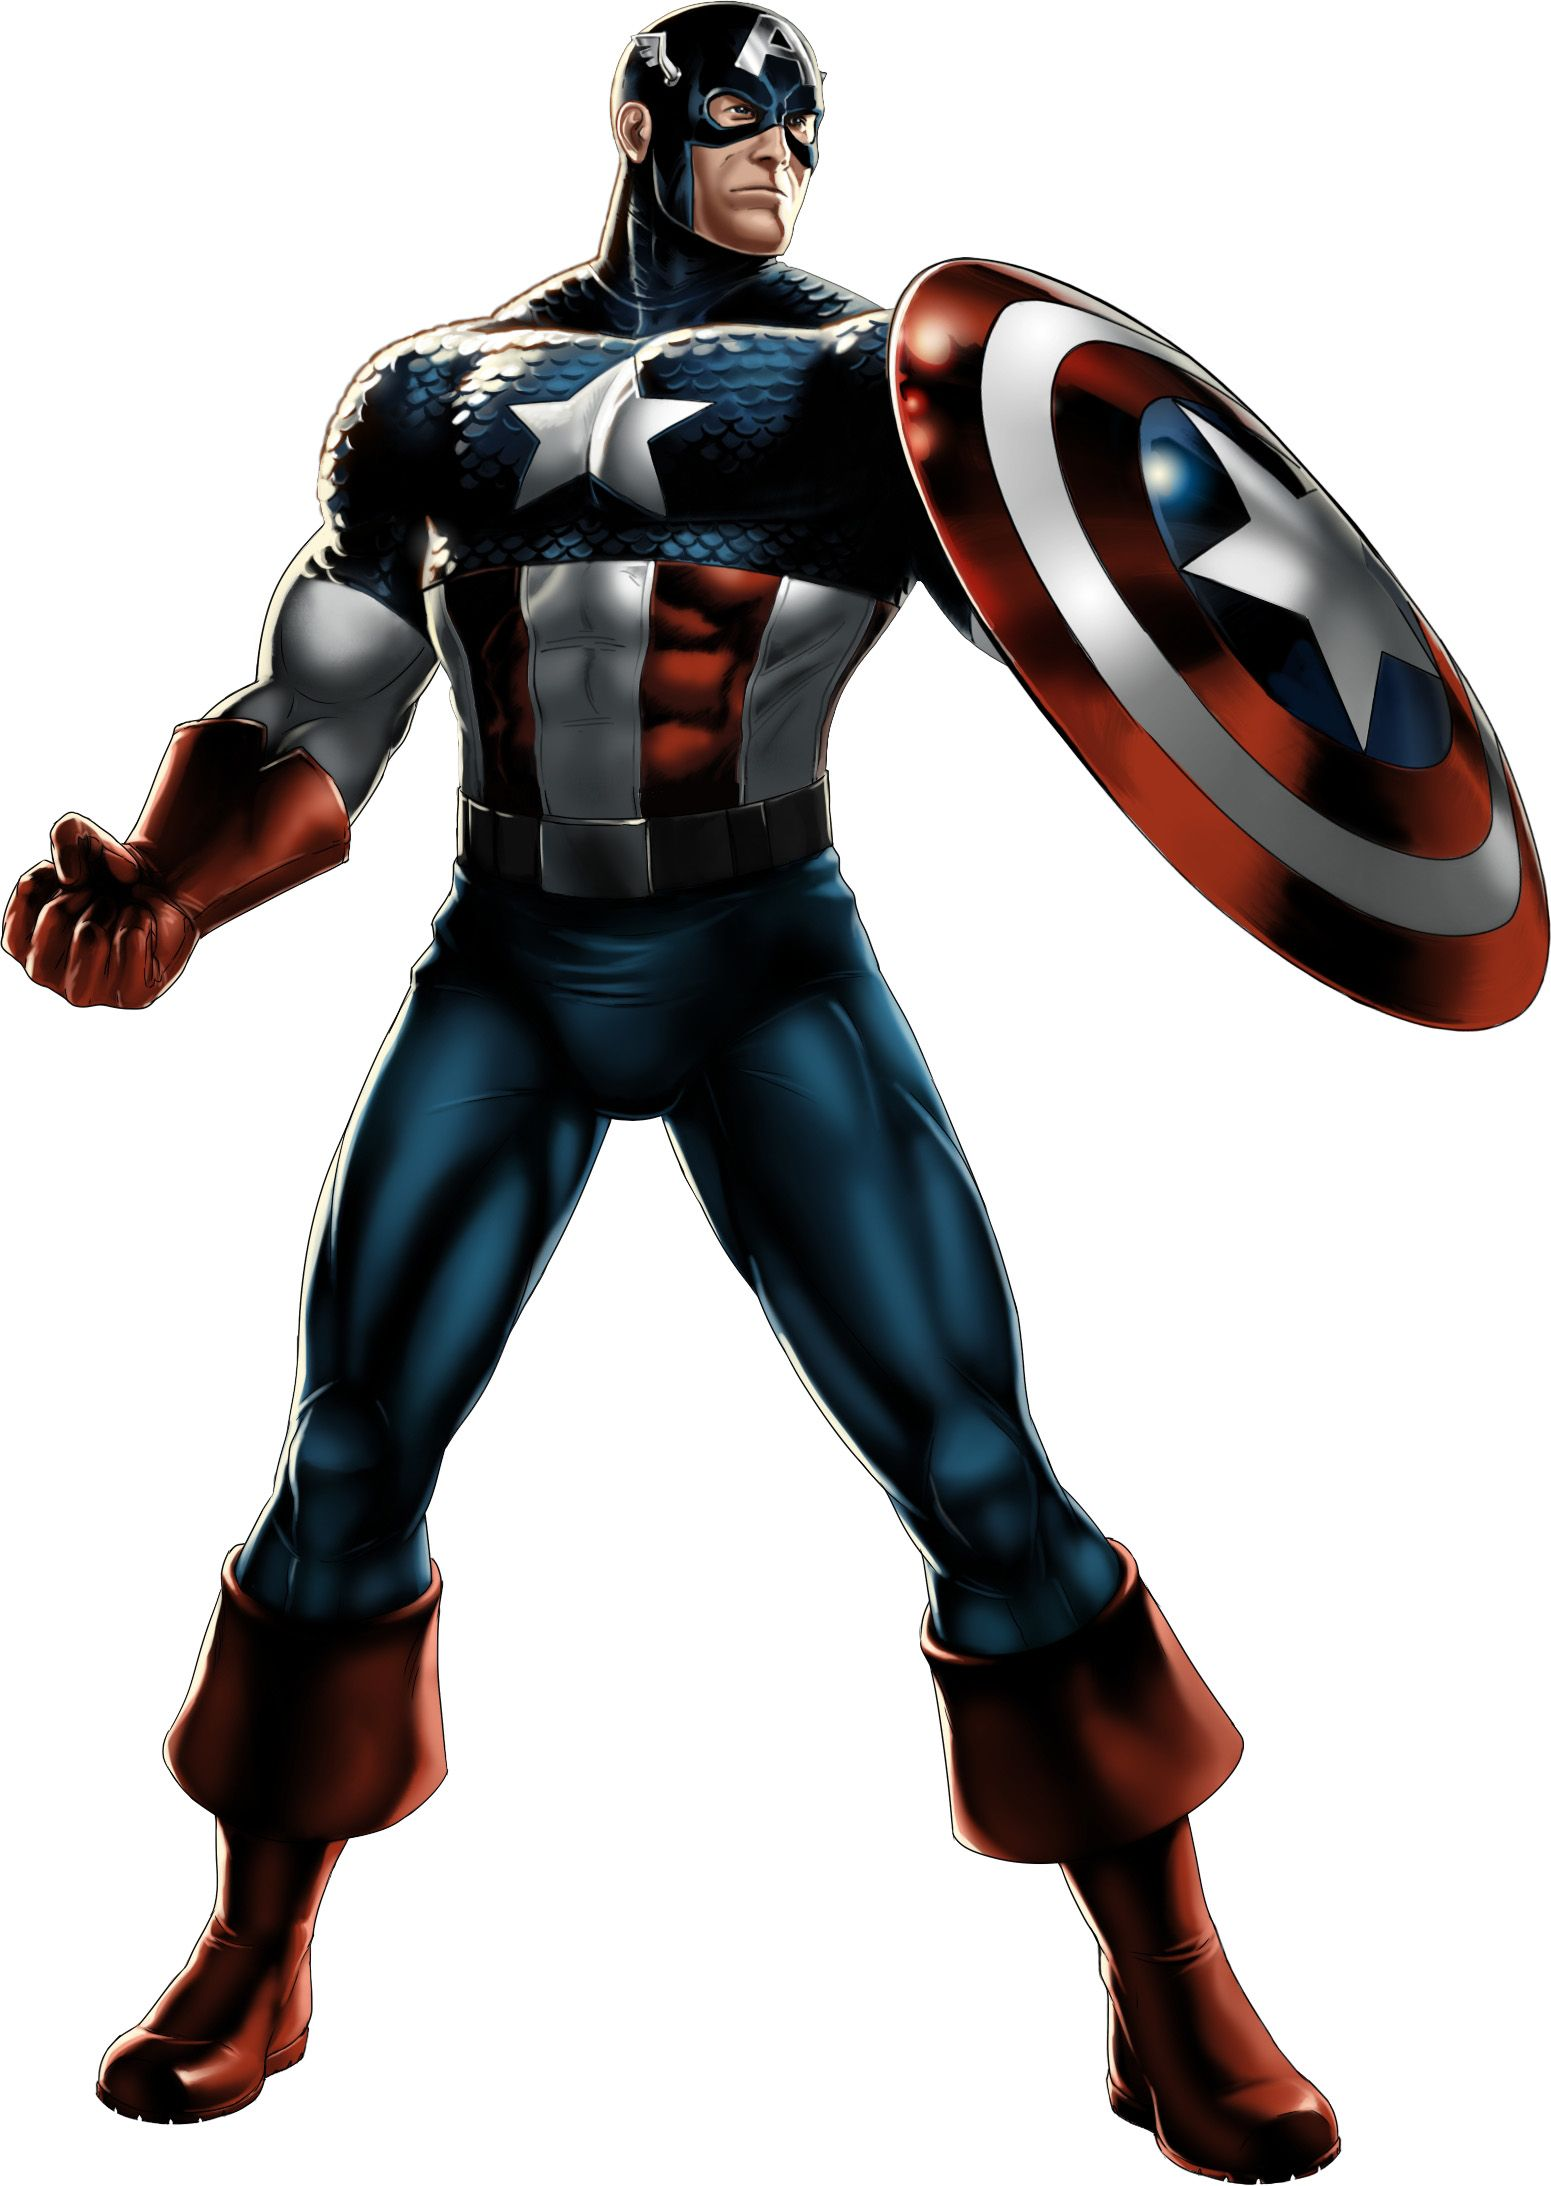 captain america classic marvel avengers alliance pinterest. Black Bedroom Furniture Sets. Home Design Ideas